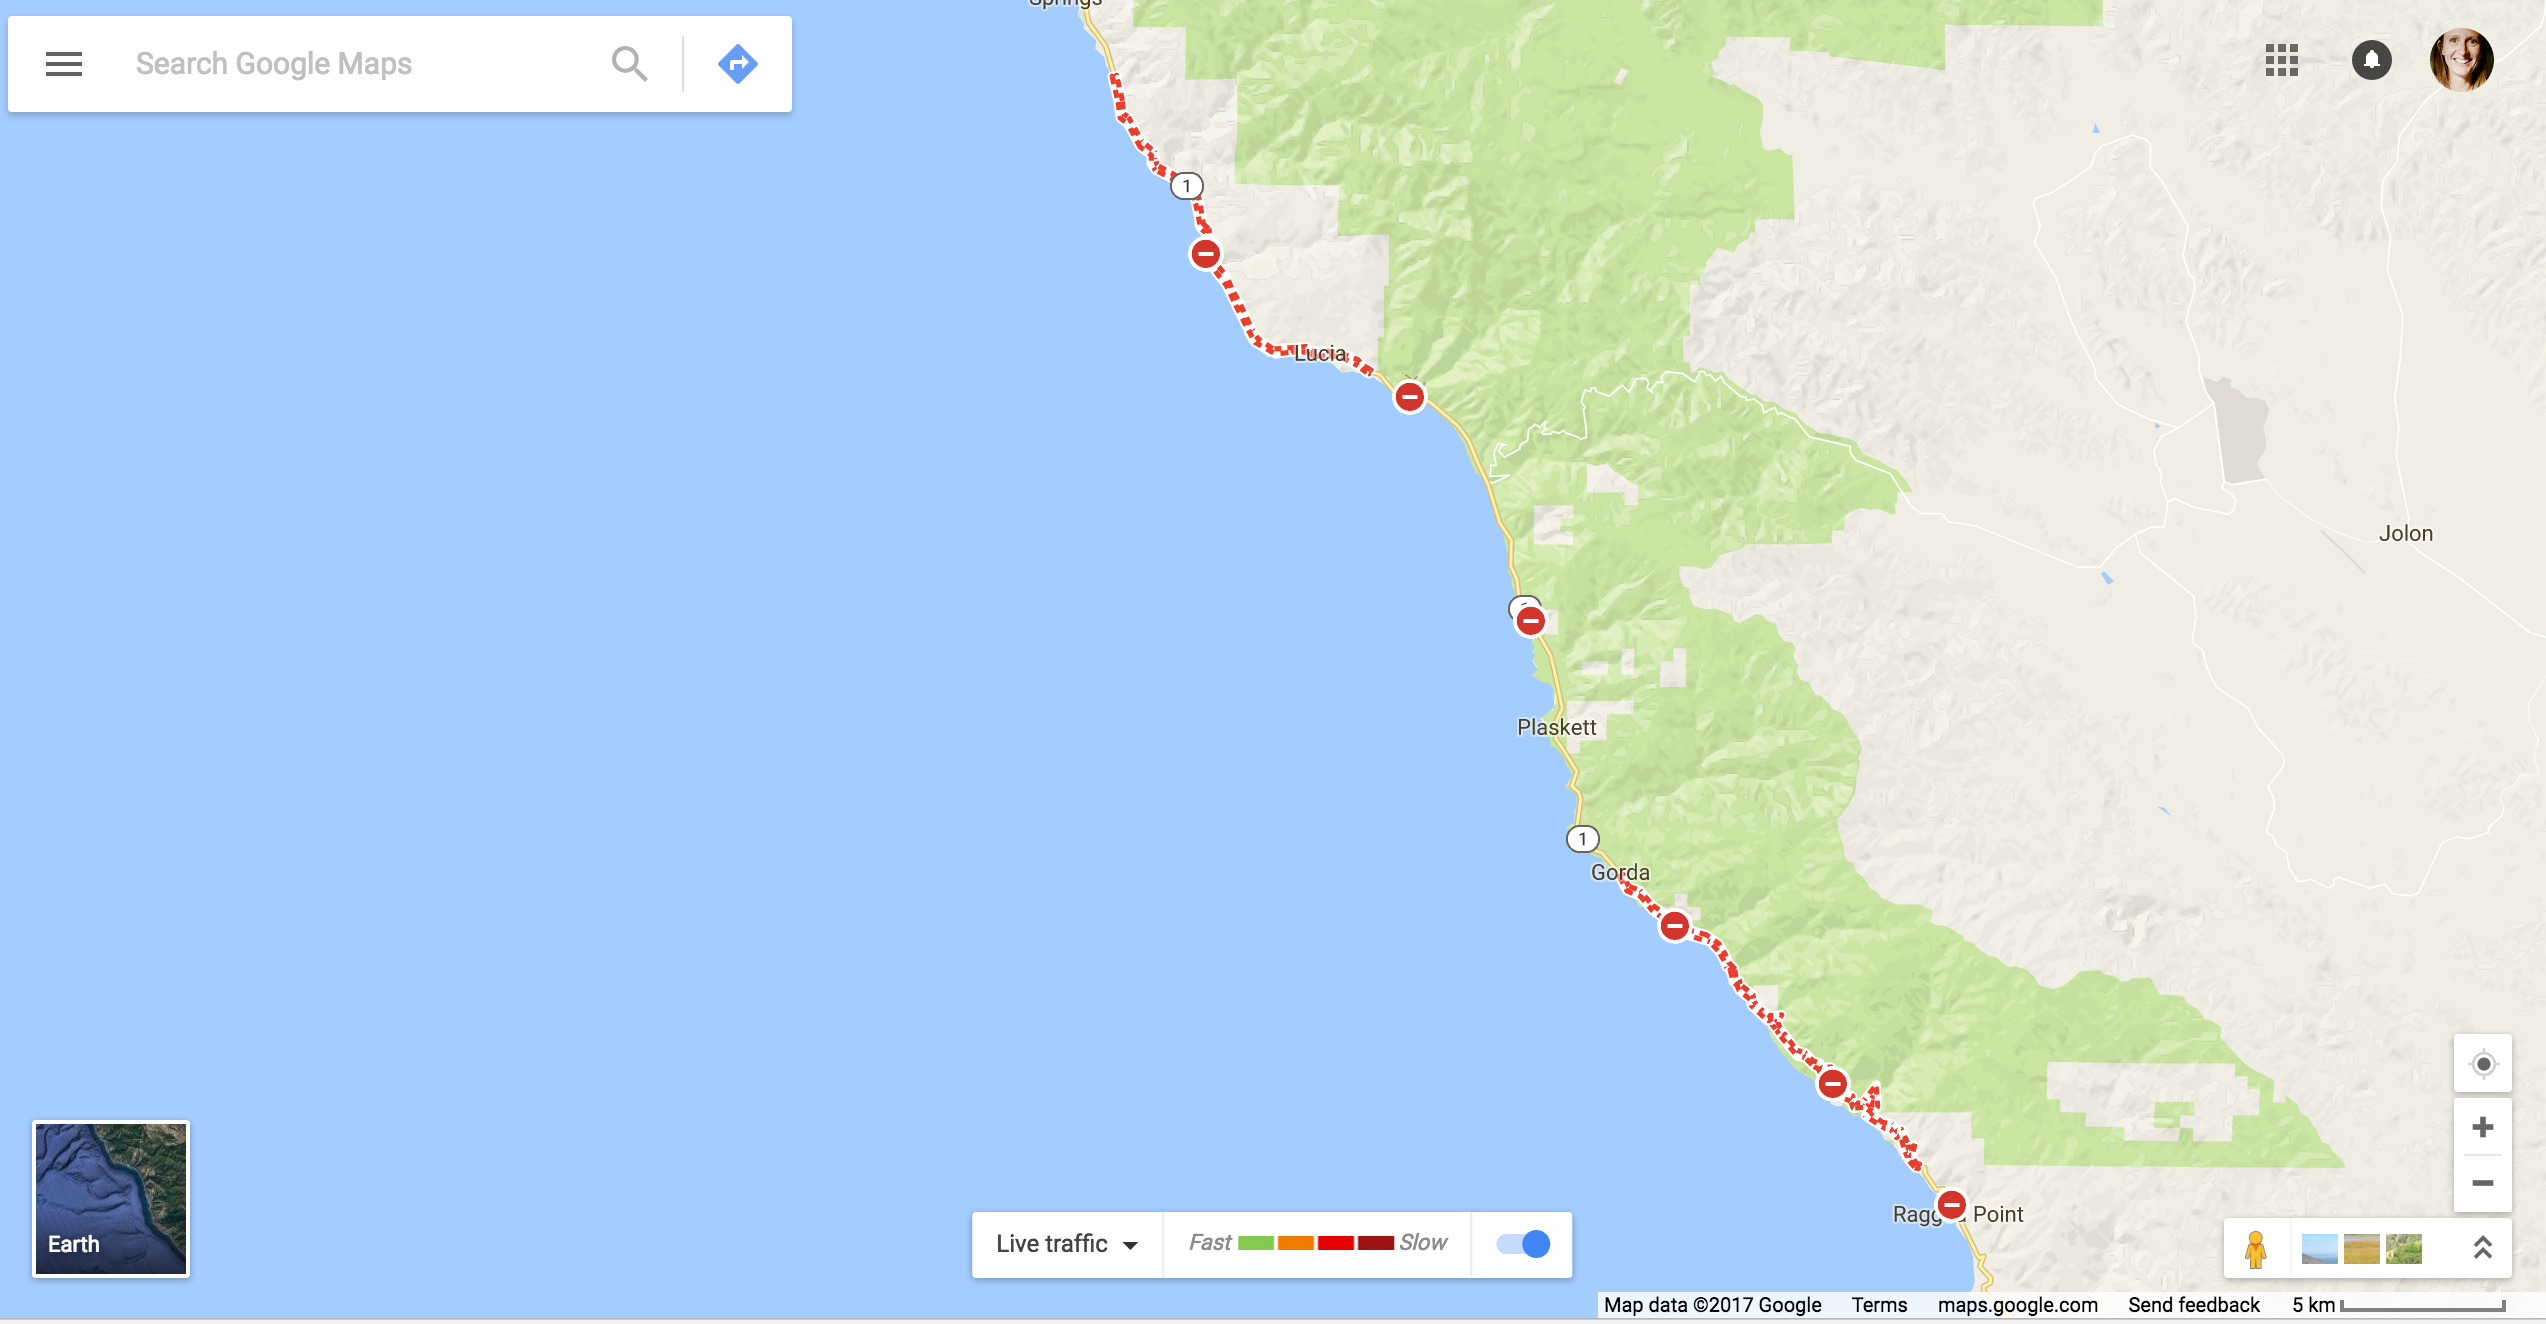 California Scheming Google Maps The Highway 1 Detour - Google Maps Us 101